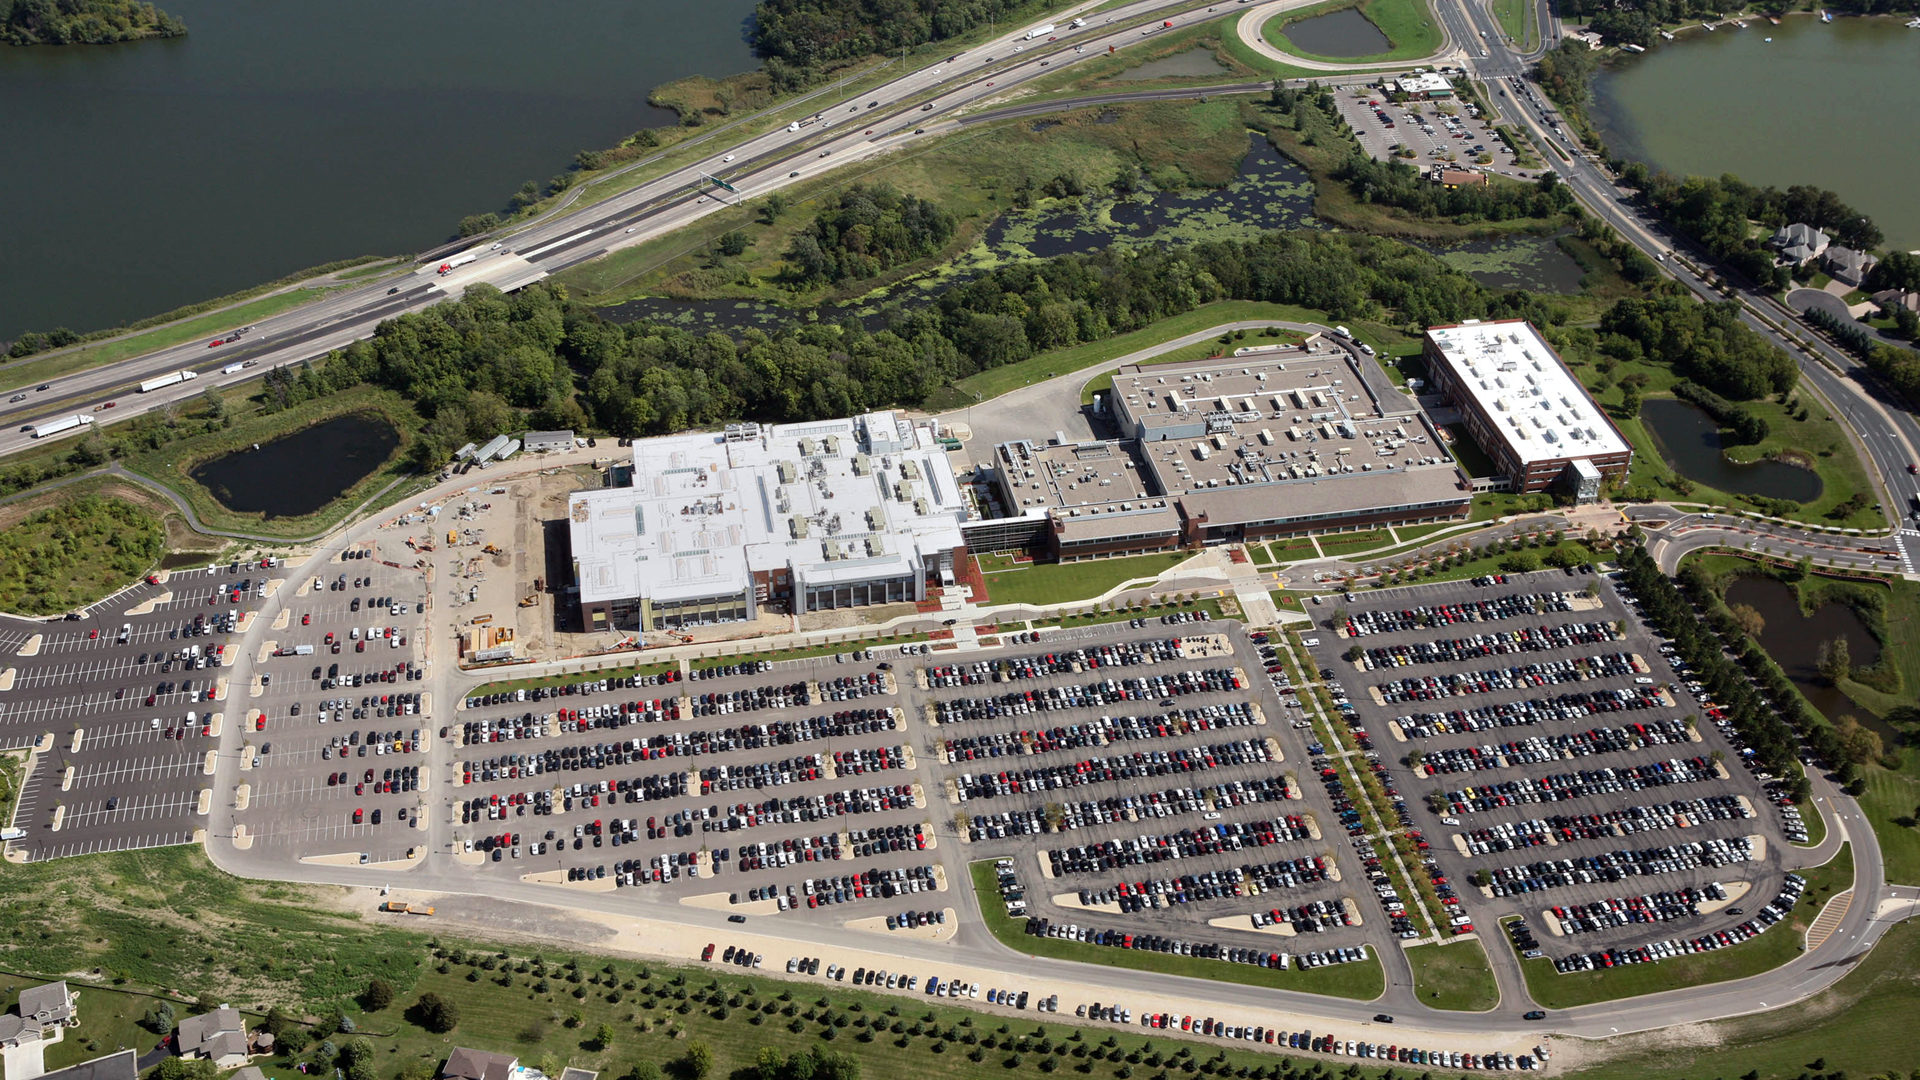 Boston Scientific Weaver Lake Phase III Expansion High Tech Manufacturing Exterior Aerial View of Campus